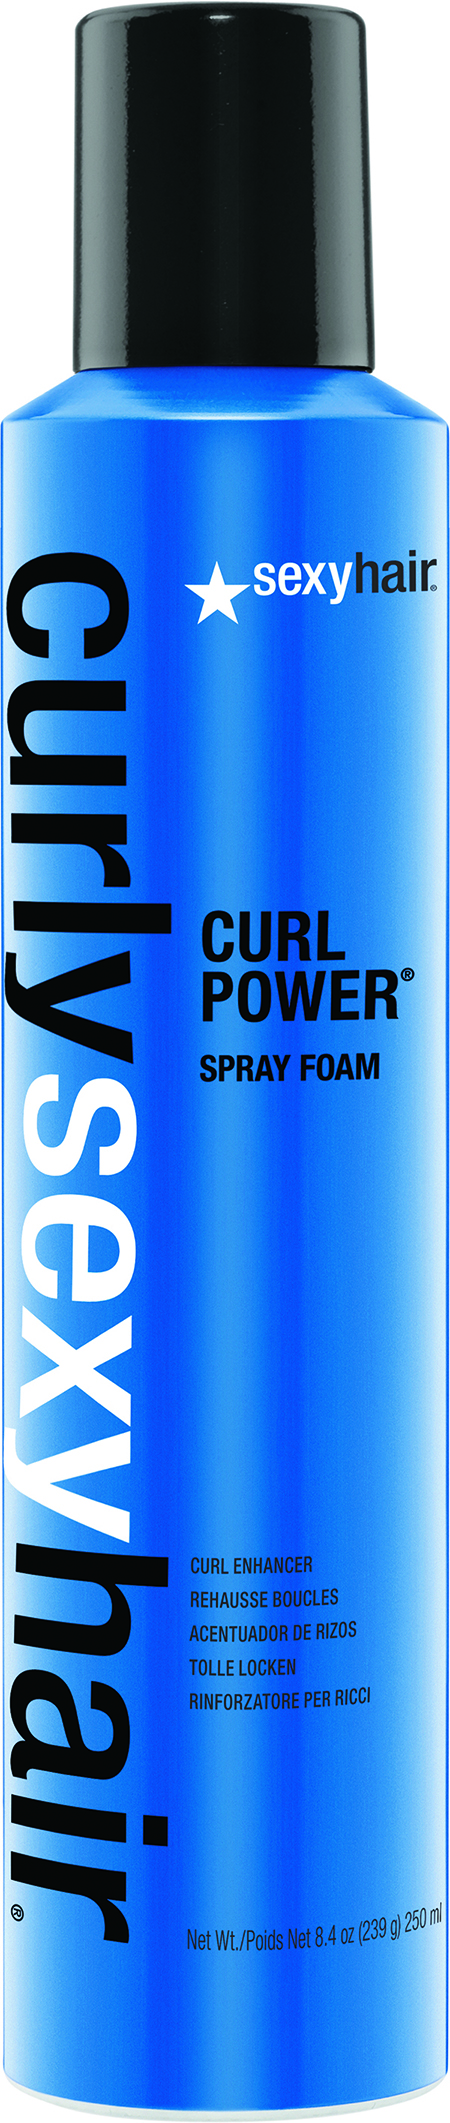 Curl Power Spray Foam moisturizes hair, instantly invigorating curls with added definition.